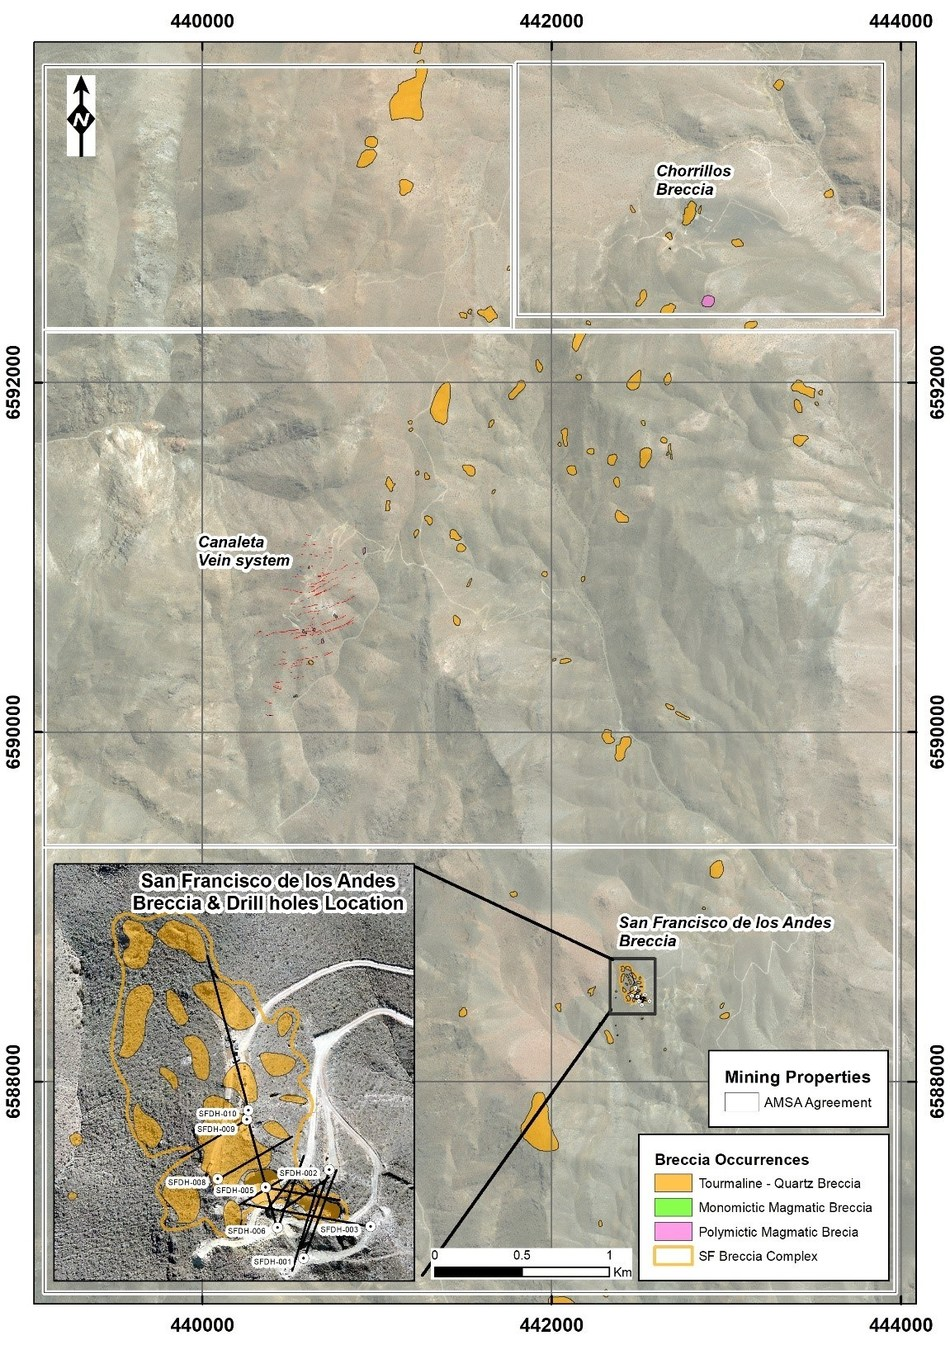 Figure 6: San Francisco tenements with main breccia locations. To date over 60 tourmaline breccias have been mapped in the project area, with large areas of the project area still to be covered by the current mapping and sampling program. Drilling at San Francisco de Los Andes has focused on the south-east corner of a composite breccia body. (CNW Group/Turmalina Metals Corp.)